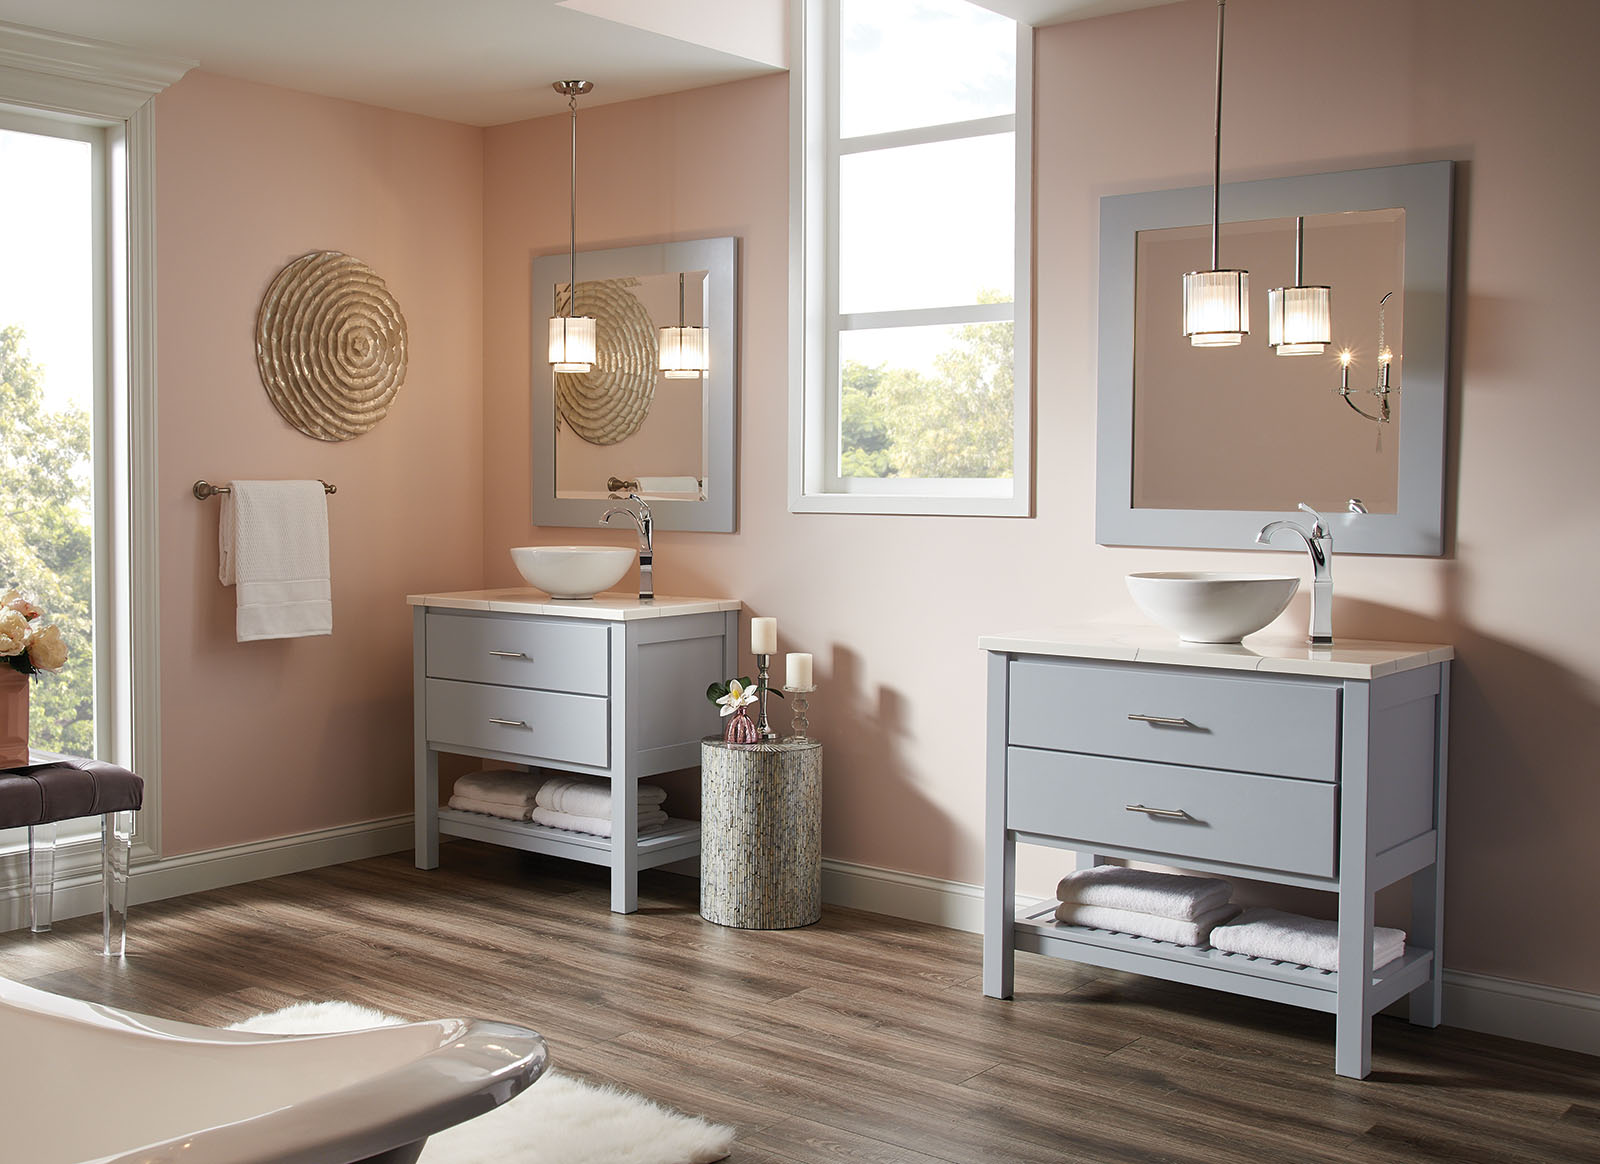 Tips For Designing A Contemporary Bathroom Bertch Cabinet Manufacturing